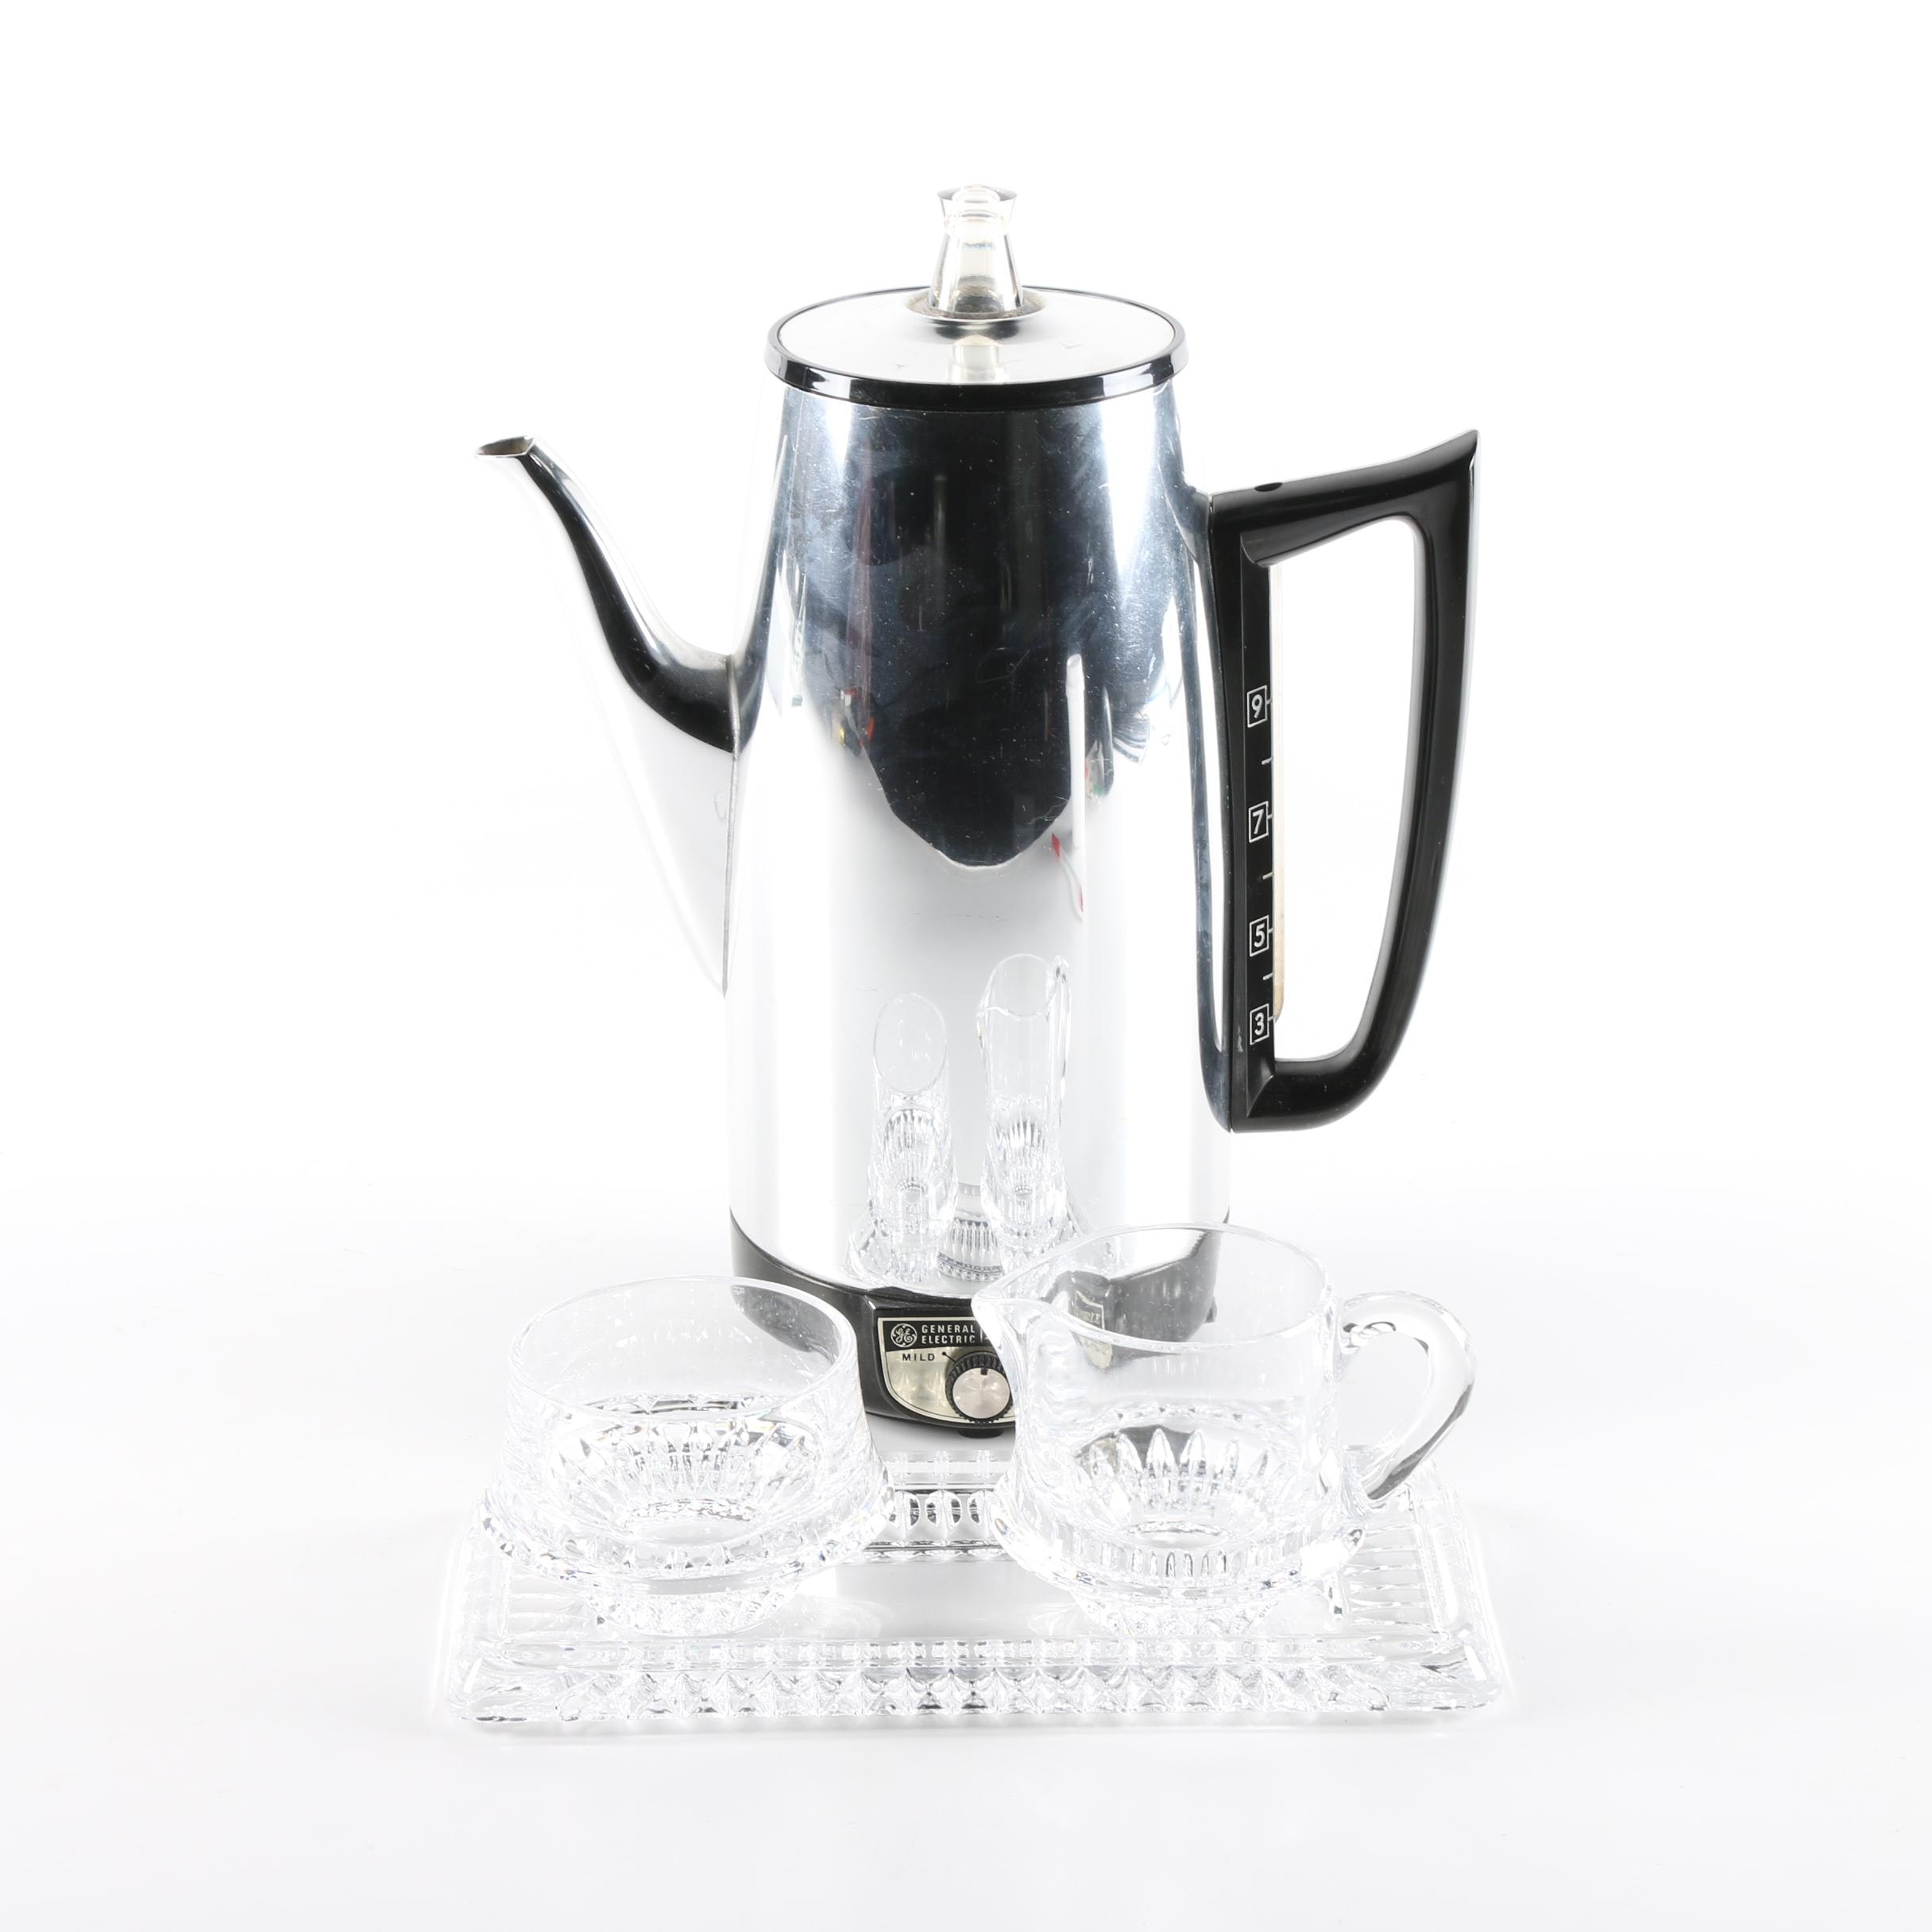 Crystal Sugar and Creamer with General Electric Immersible Coffee Percolator